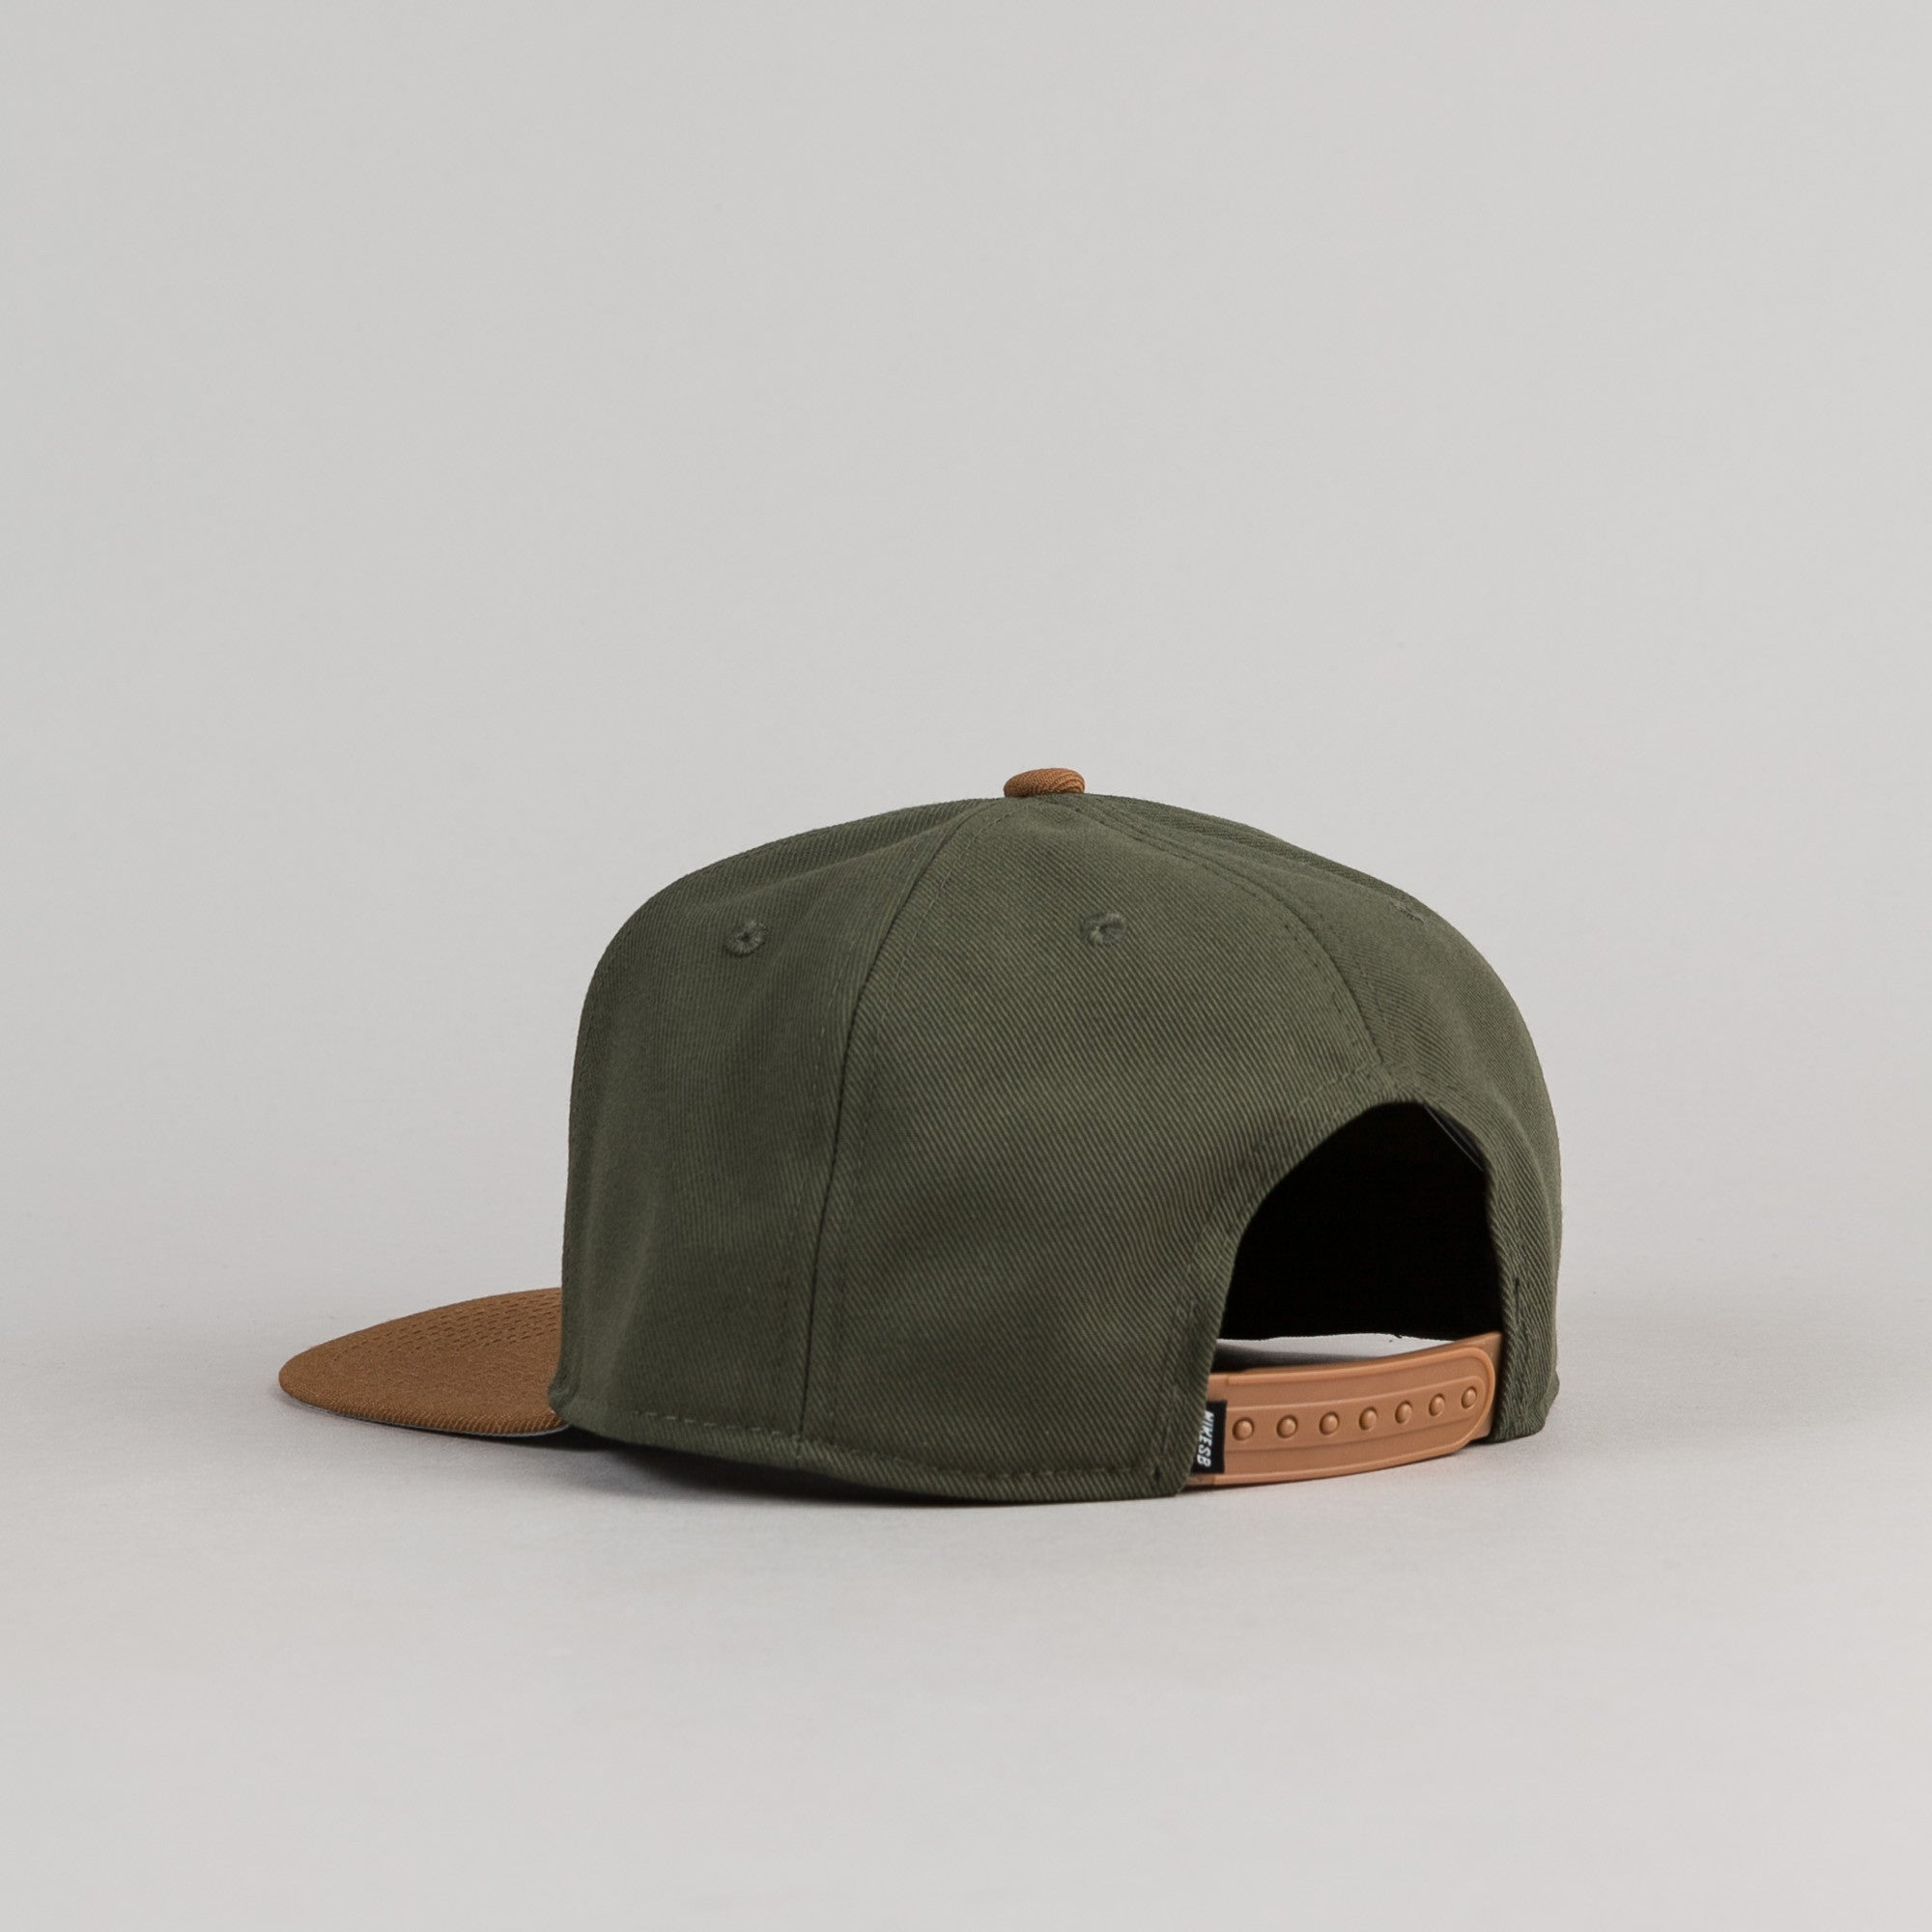 Nike SB Icon 6 Panel Cap - Cargo Khaki / Ale Brown / Black / White